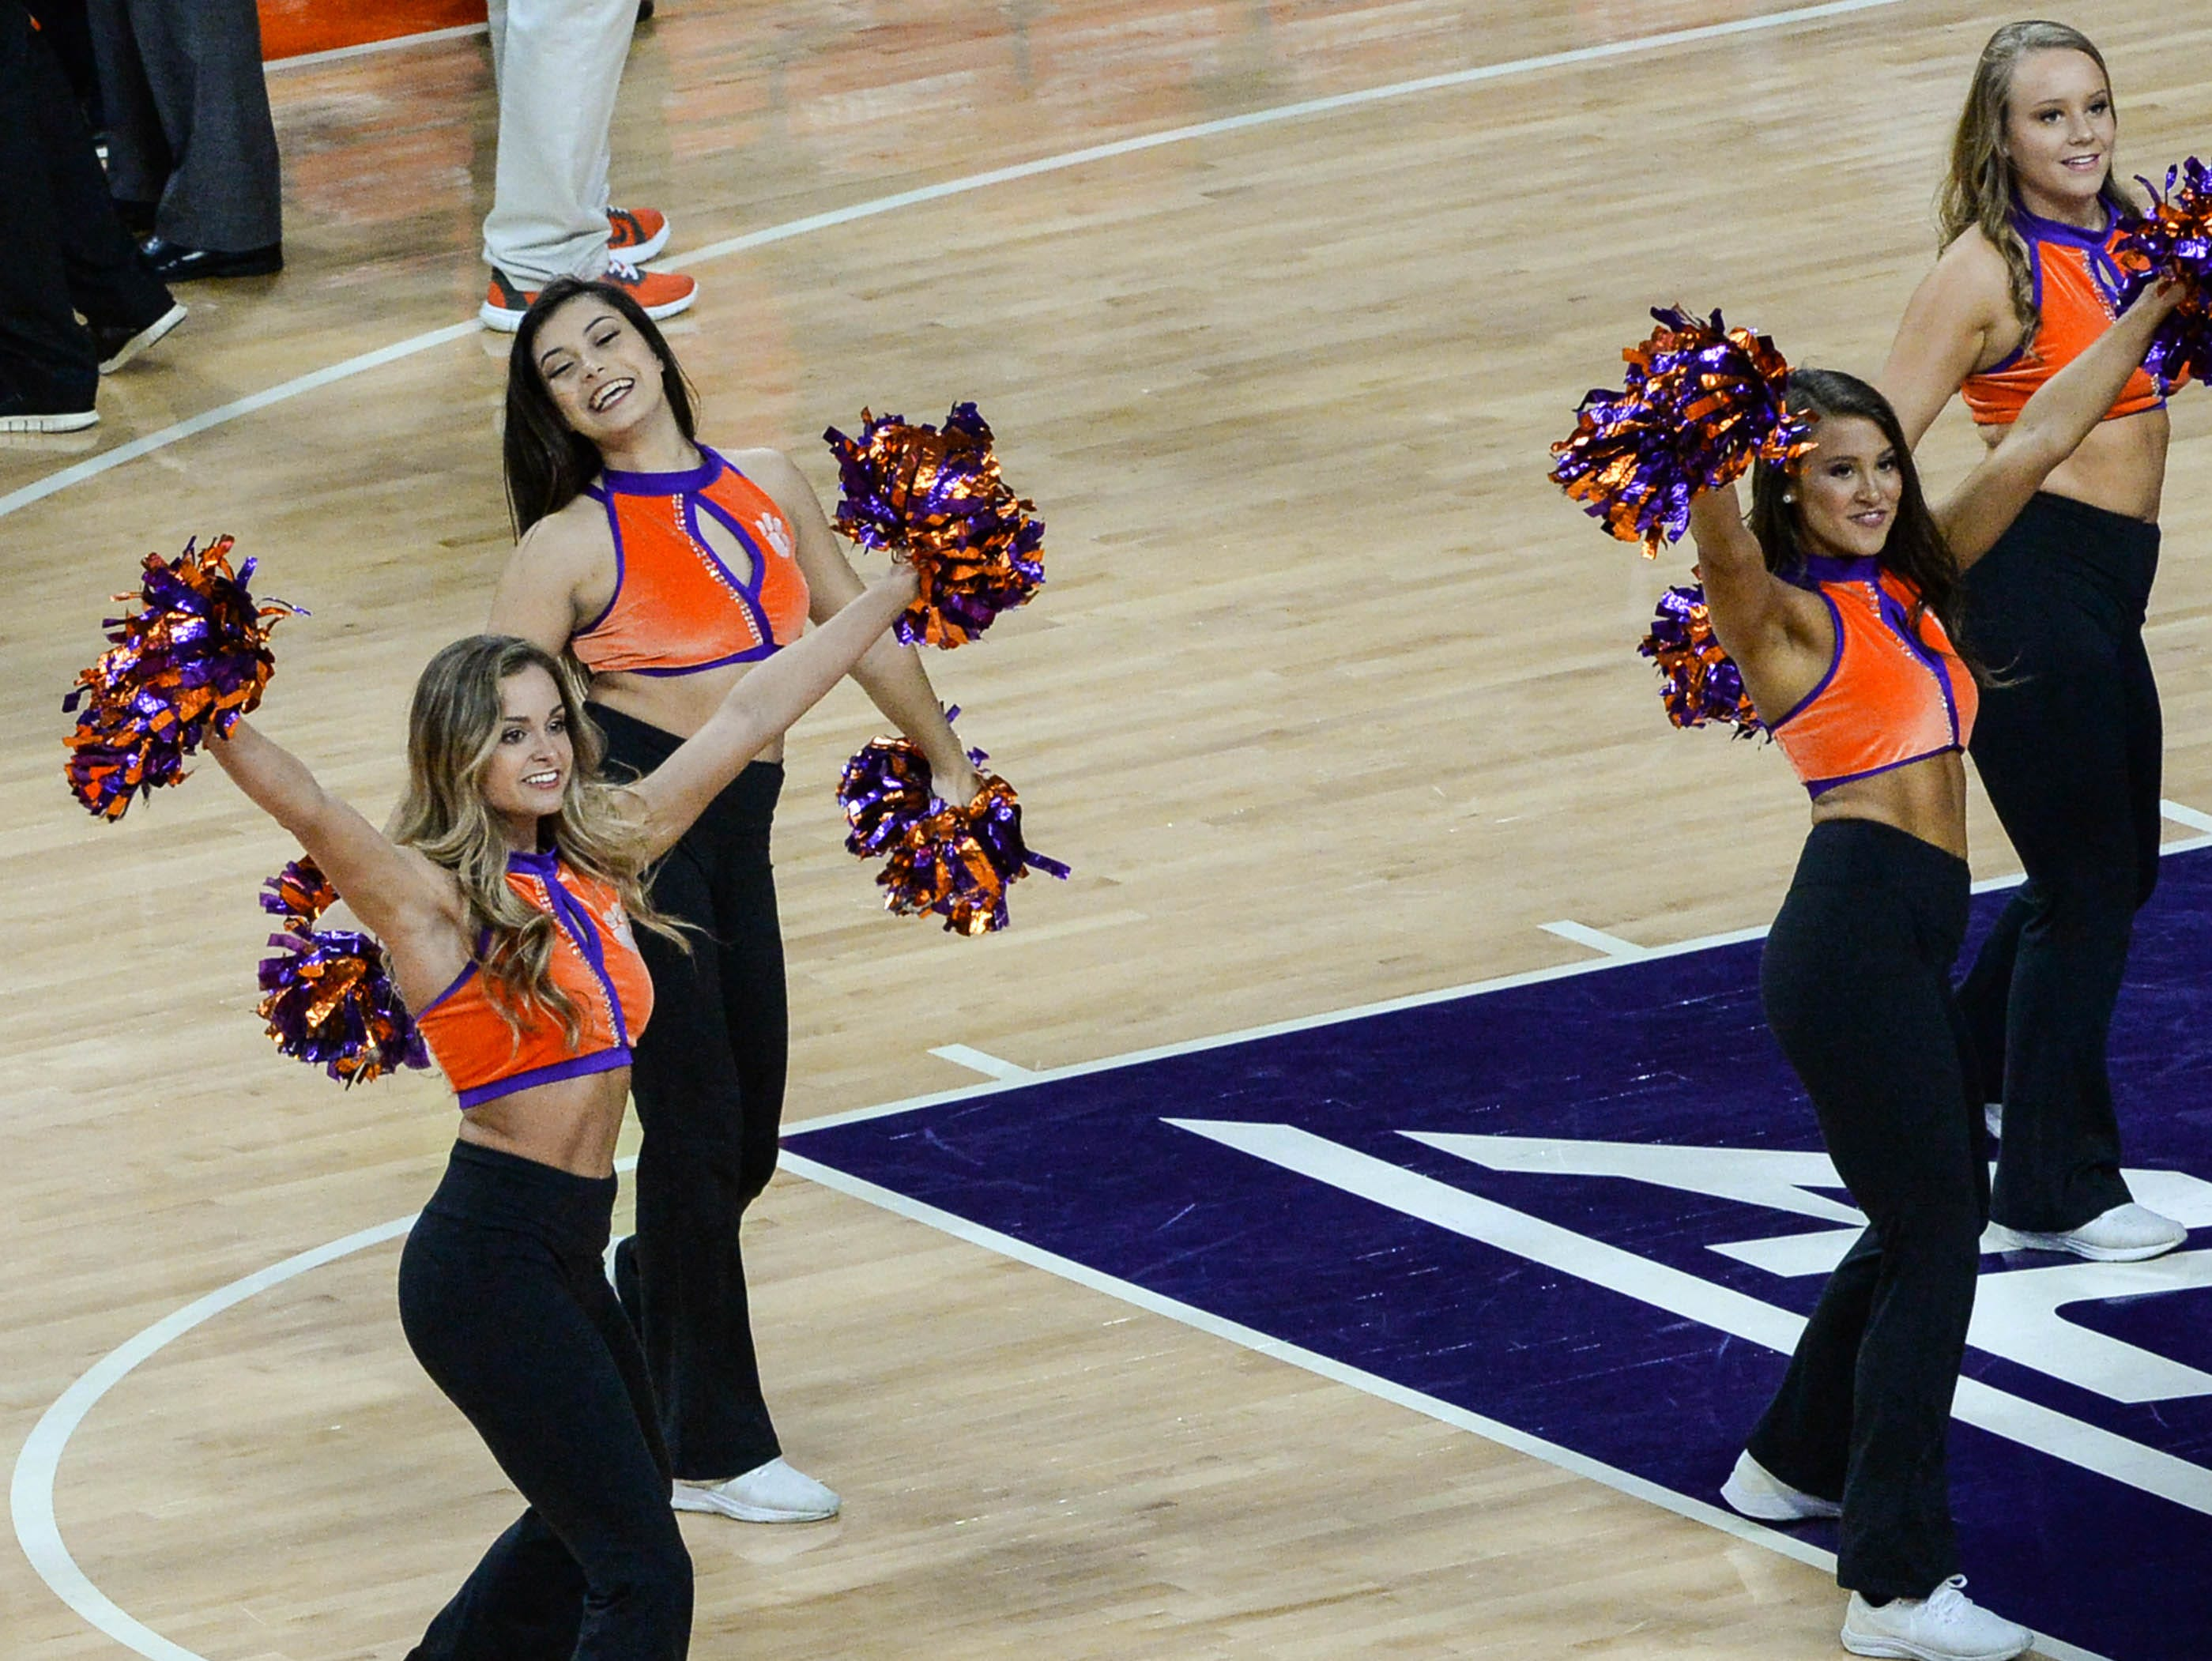 Clemson Rally Cats dance during the first half at Littlejohn Coliseum in Clemson Saturday, March 9, 2019.